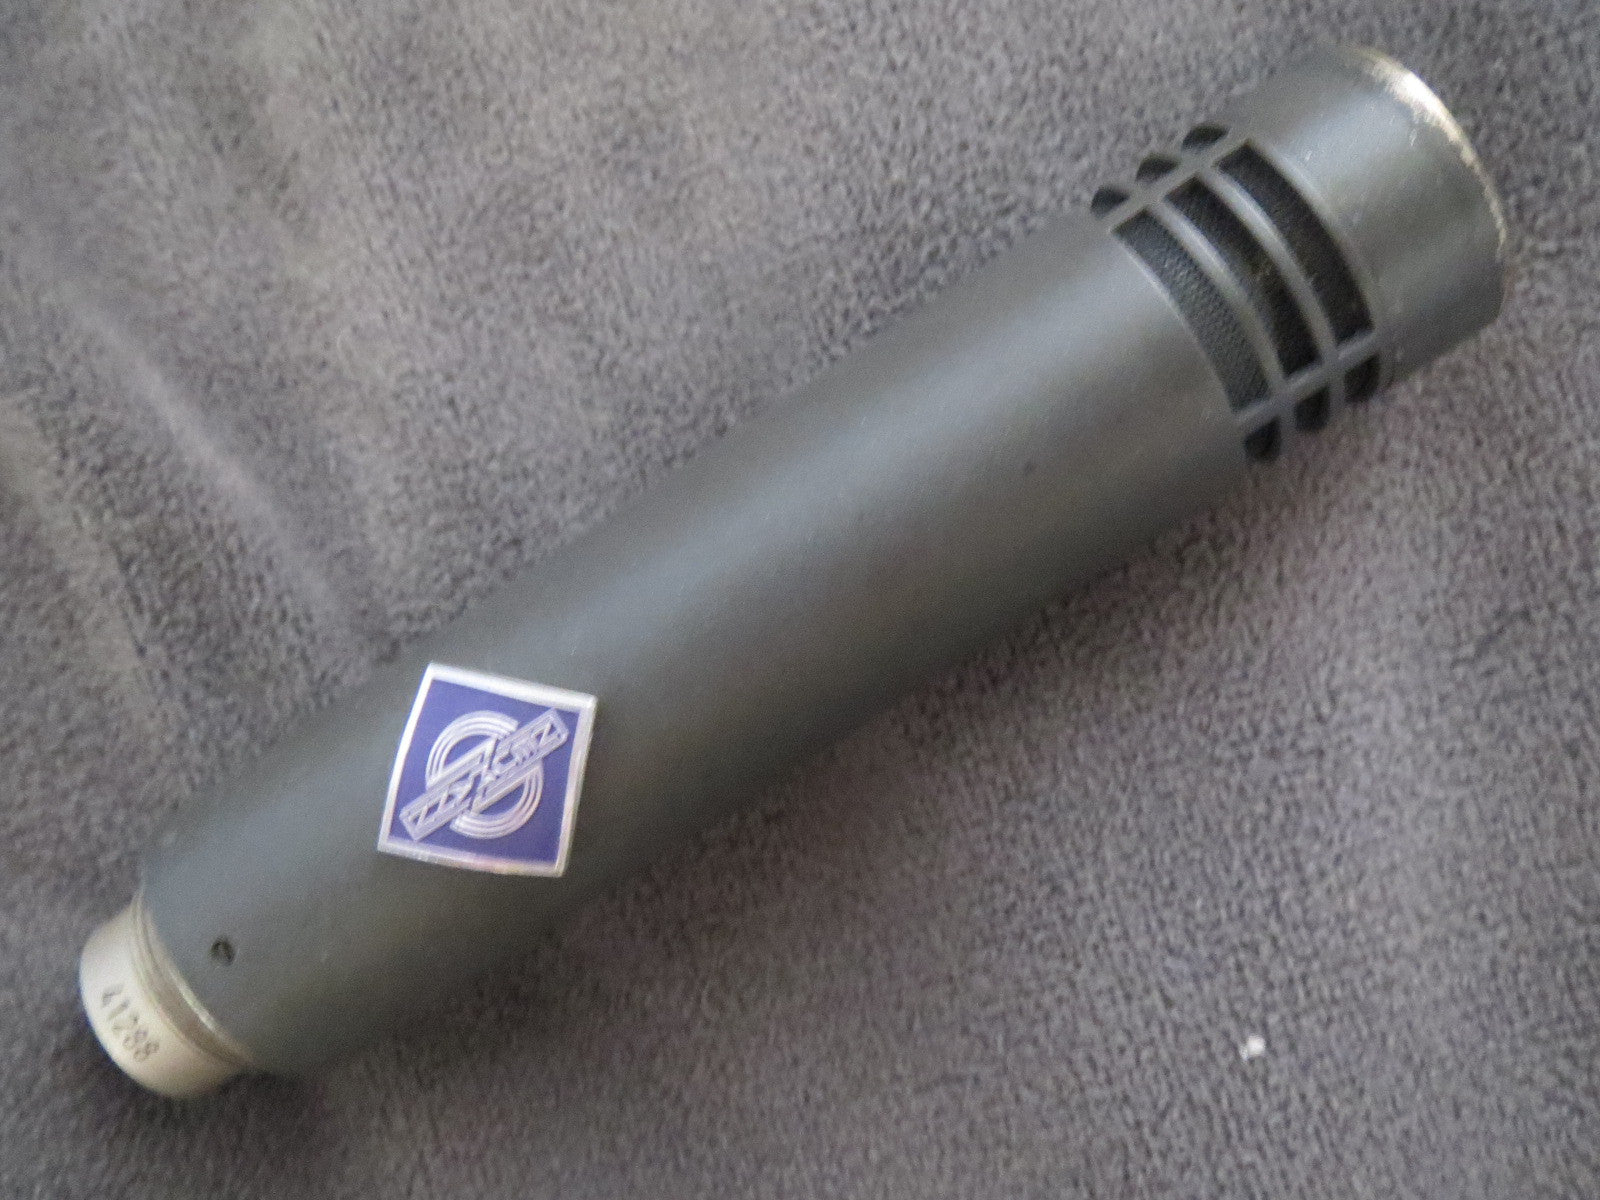 NEUMANN KM84 RARE VINTAGE CARDIOID CONDENSER MICROPHONE WITH XLR CABLE